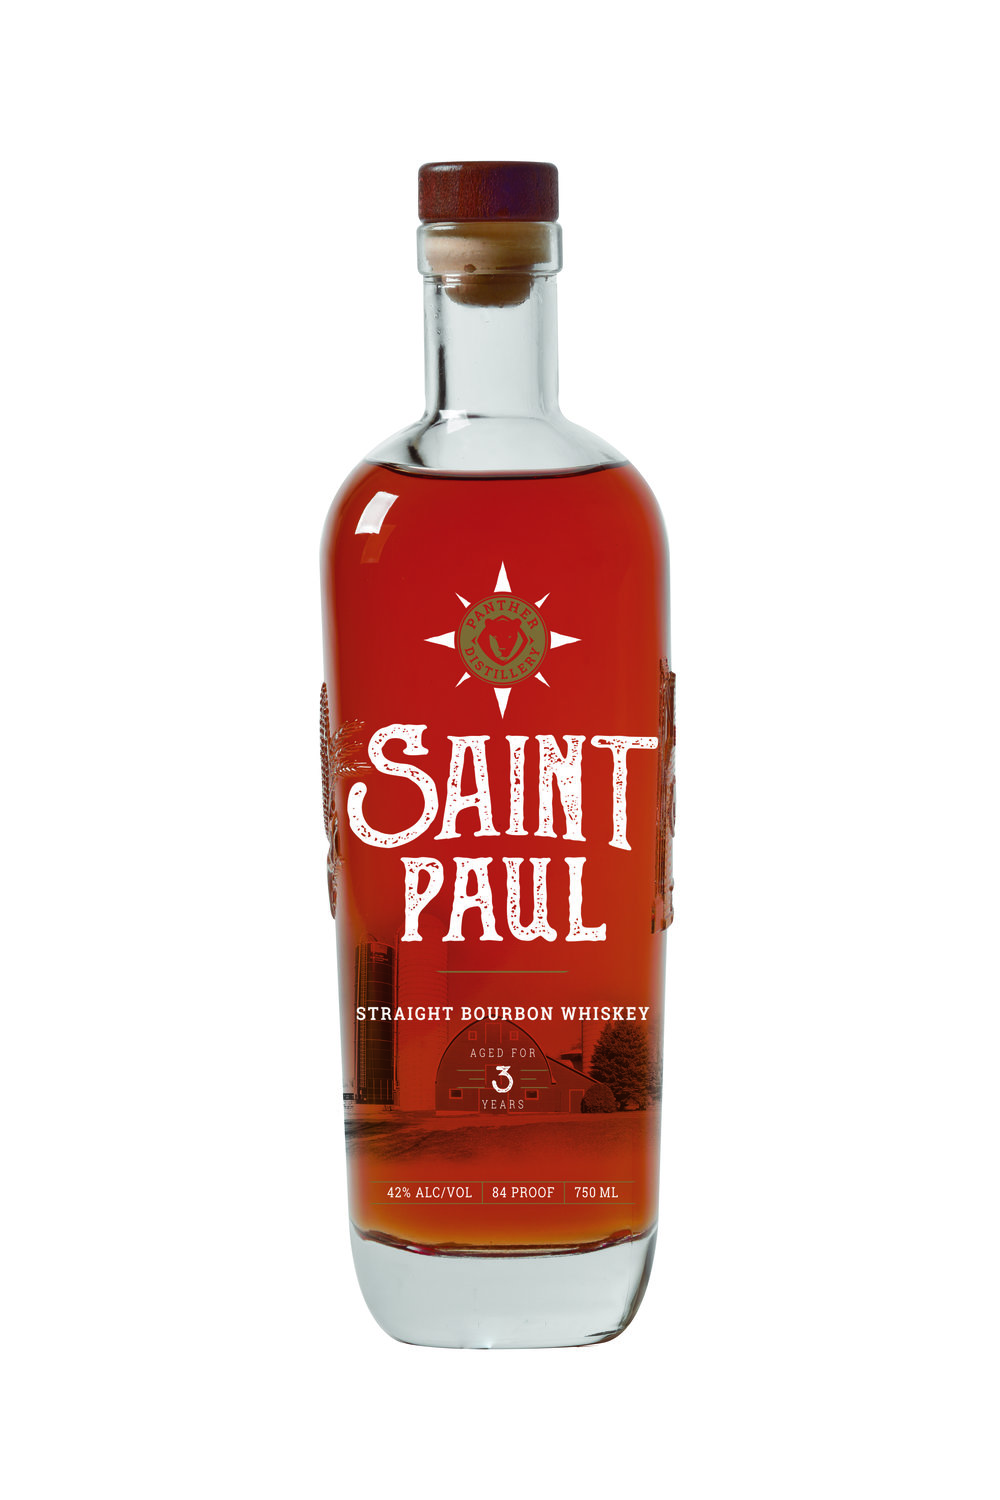 StPaul_Bottle (1).jpg